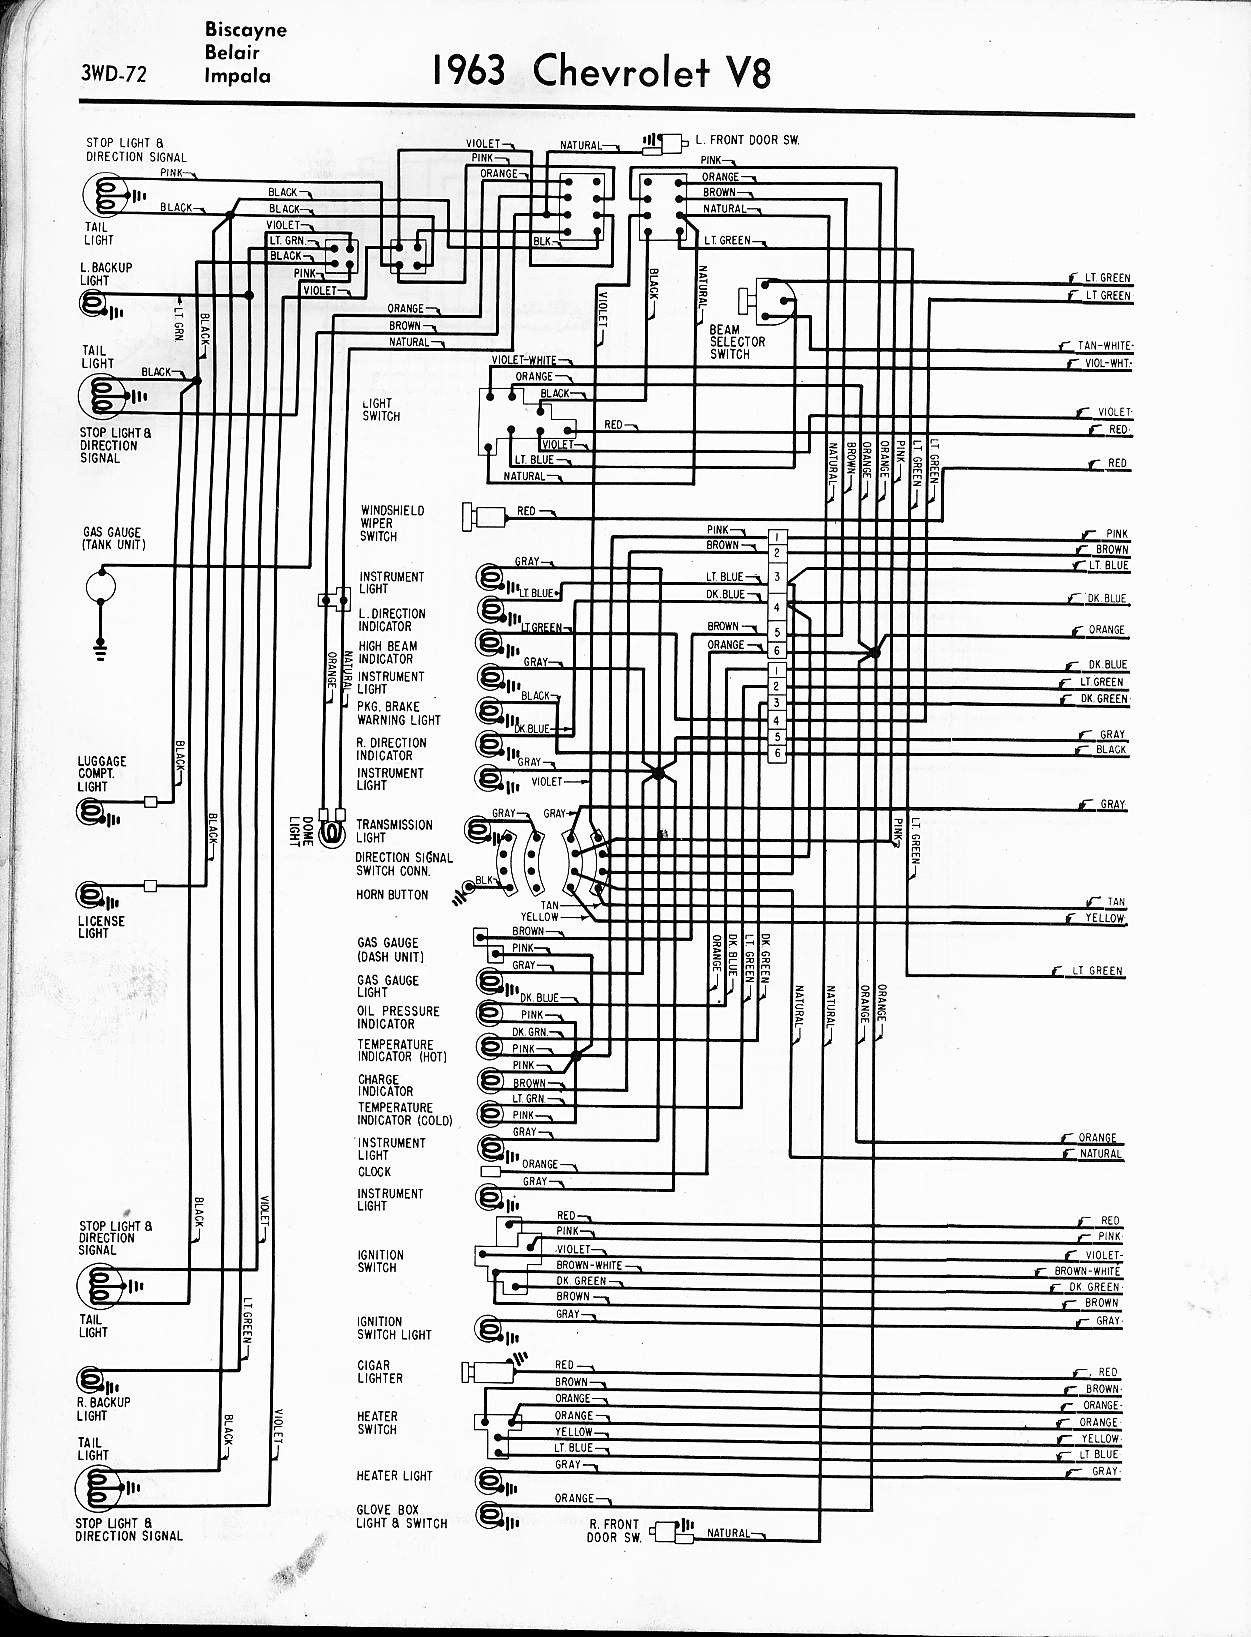 hight resolution of chevrolet bel air diagram complete 1966 chevrolet bel air wiring 1964 chevelle windshield wiper wiring diagram 1964 chevelle wiring diagram